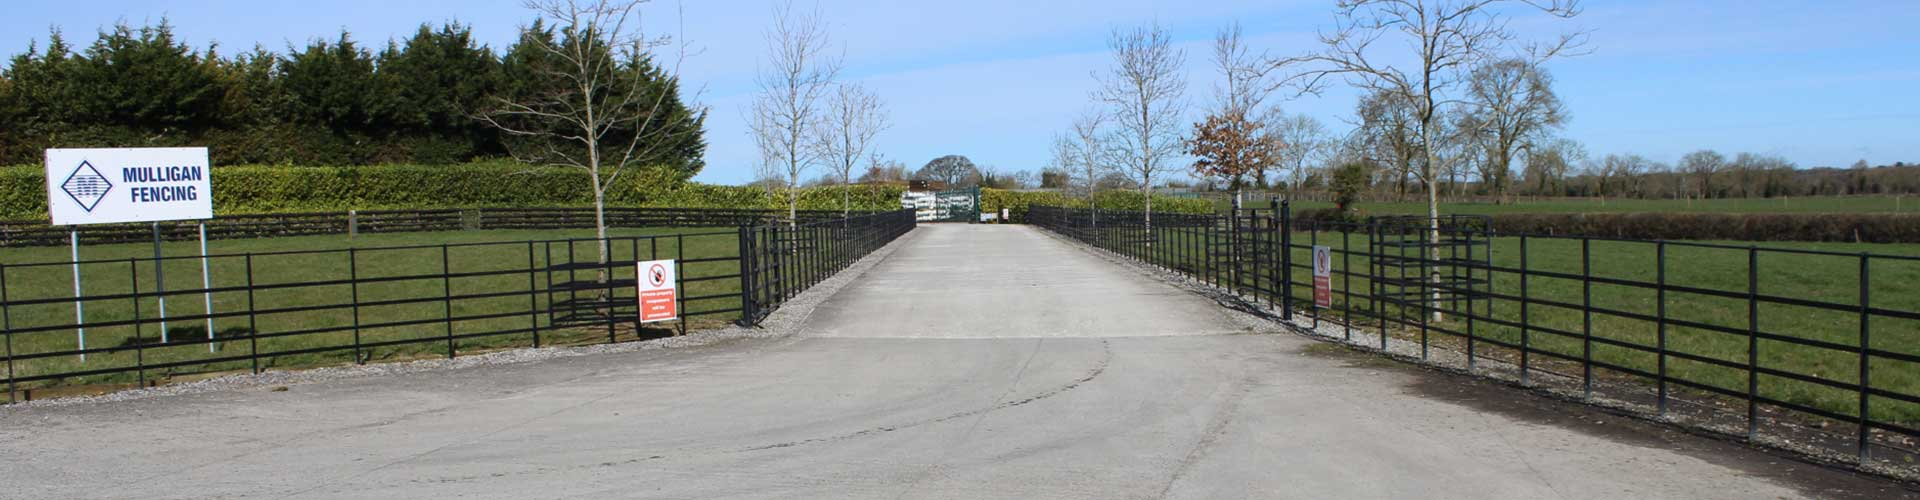 Project: Mulligan Fencing, Meath